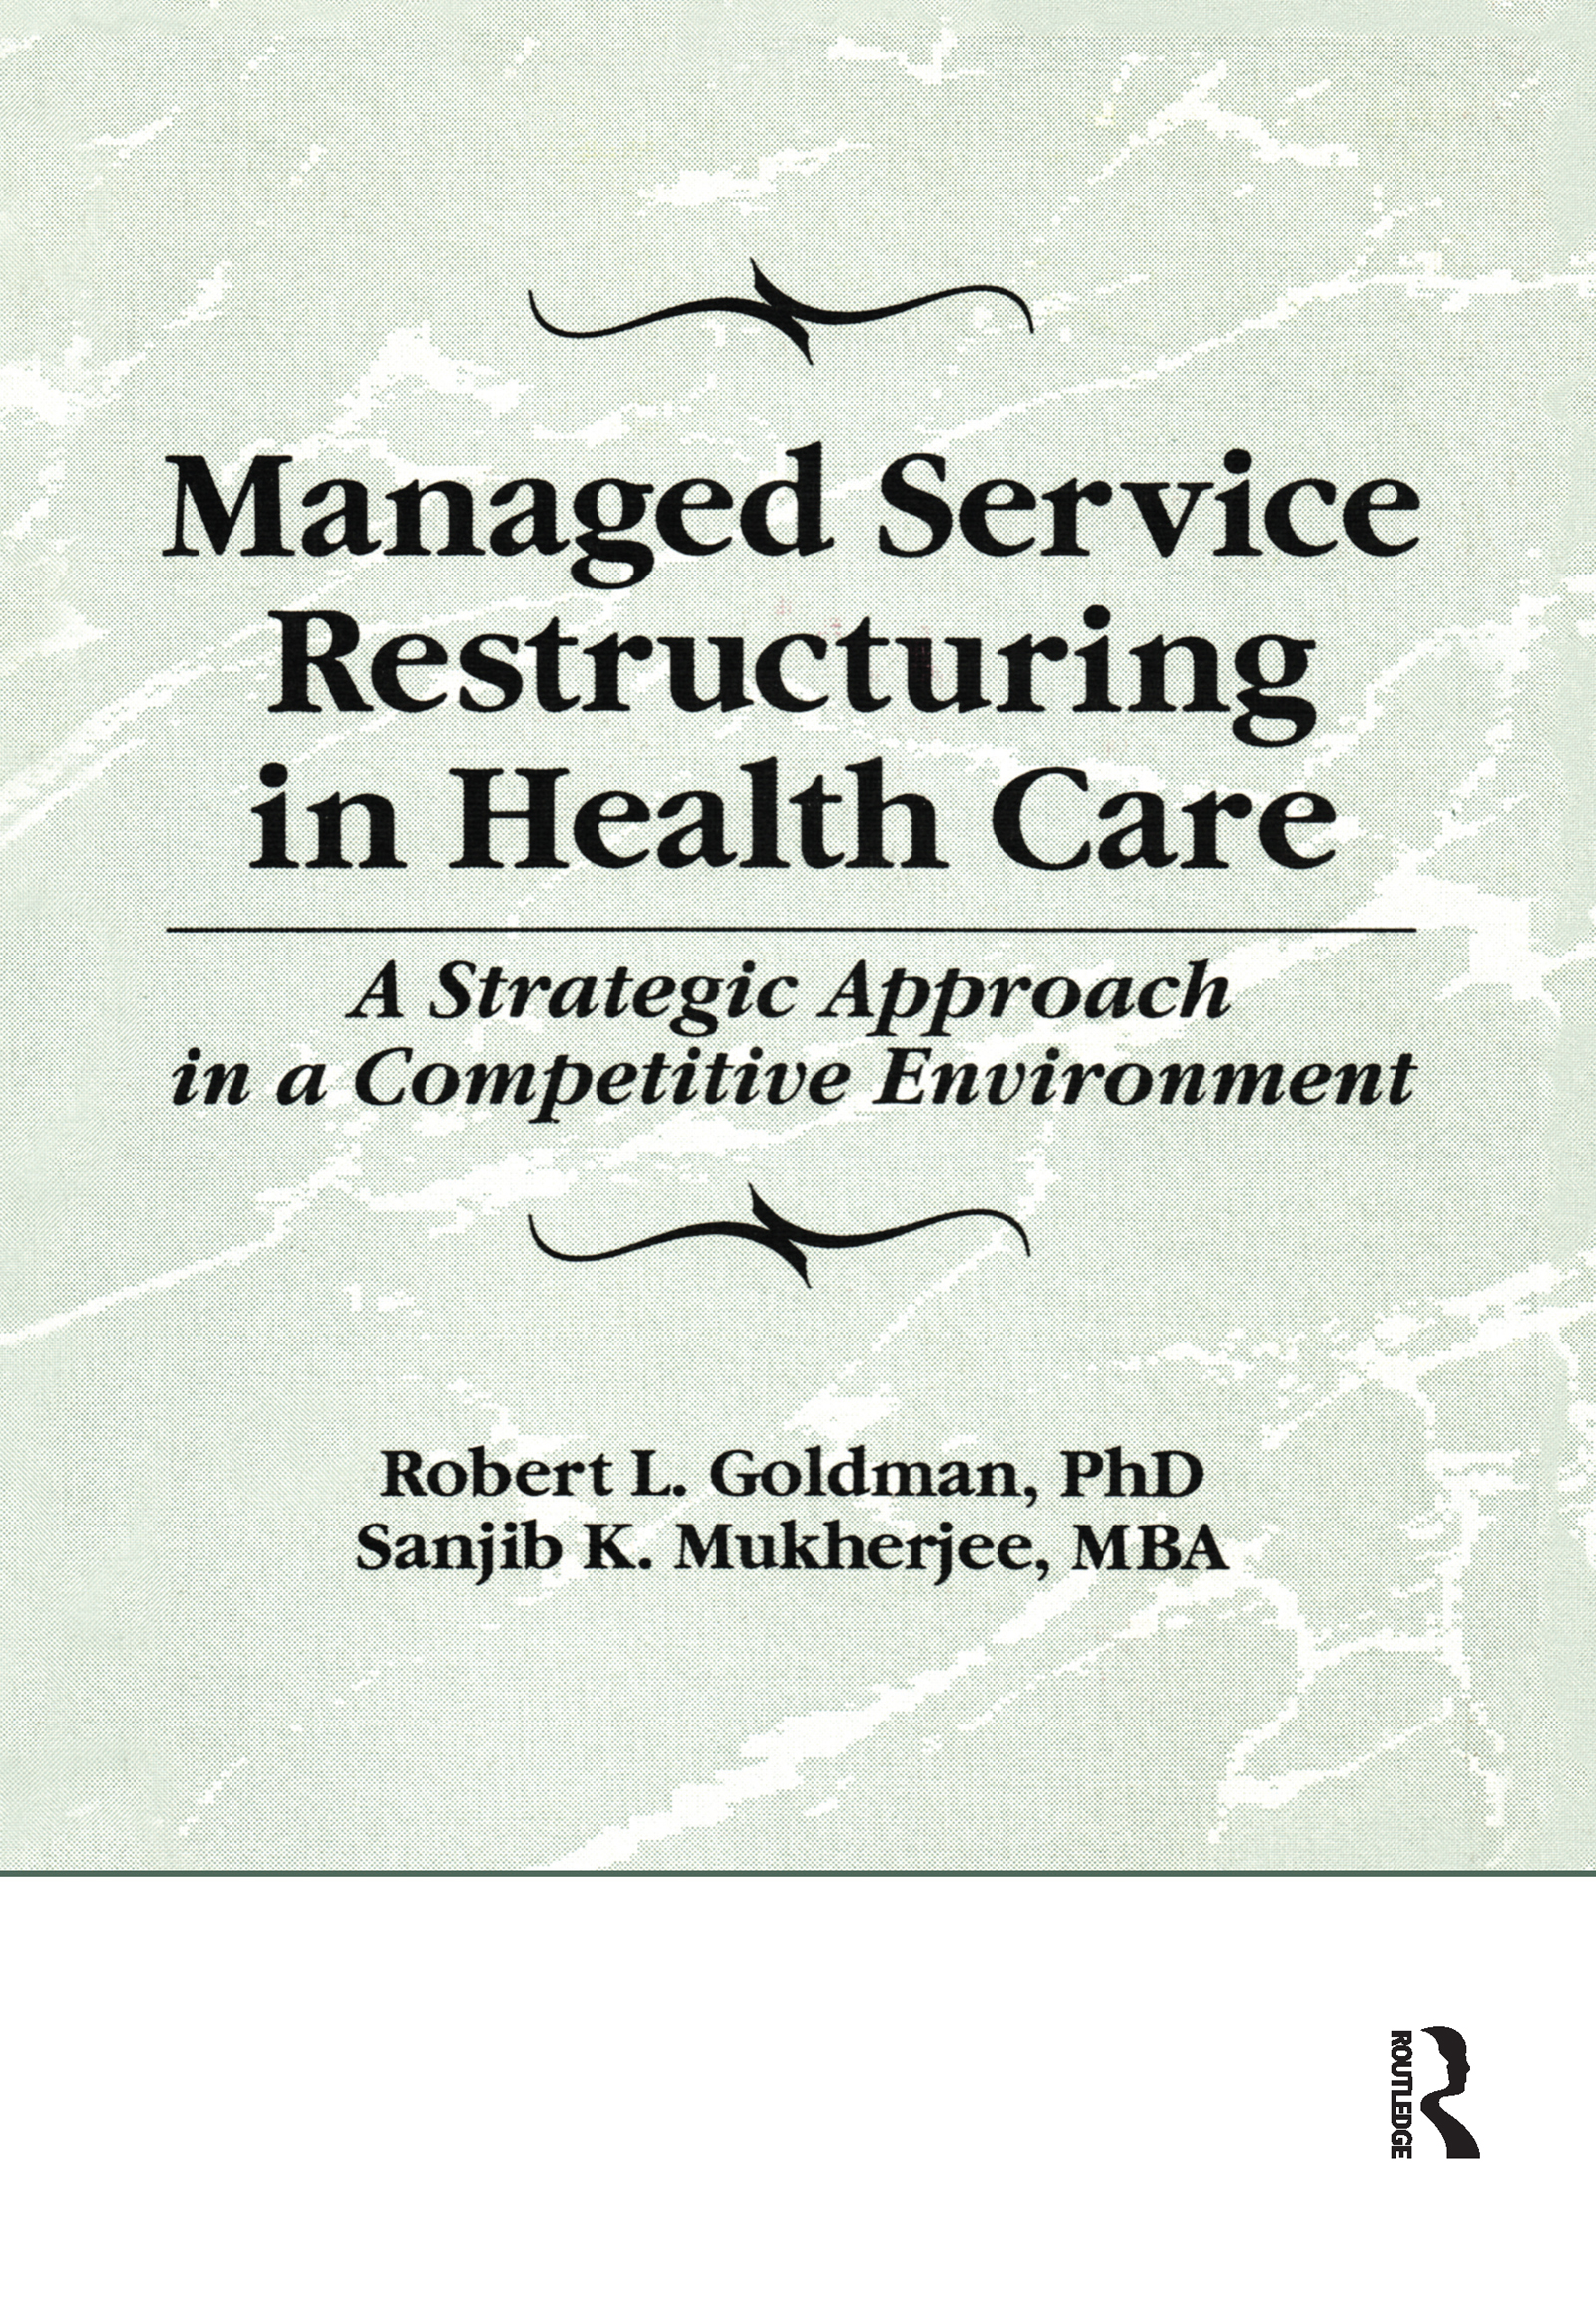 Managed Service Restructuring in Health Care: A Strategic Approach in a Competitive Environment book cover